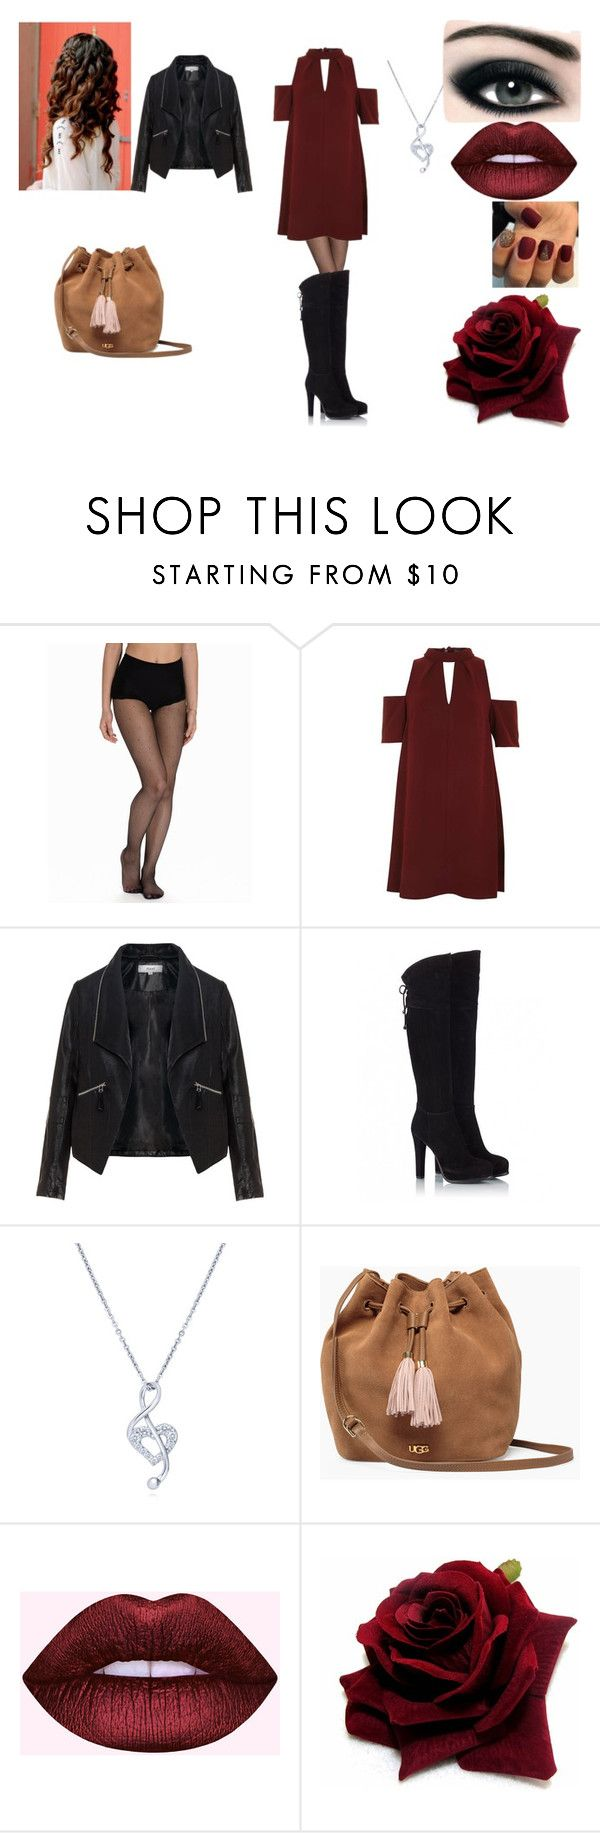 """""""valentines"""" by geor6900 on Polyvore featuring DIM, Topshop, Zizzi, Fratelli Karida, BERRICLE, UGG and Max Factor"""